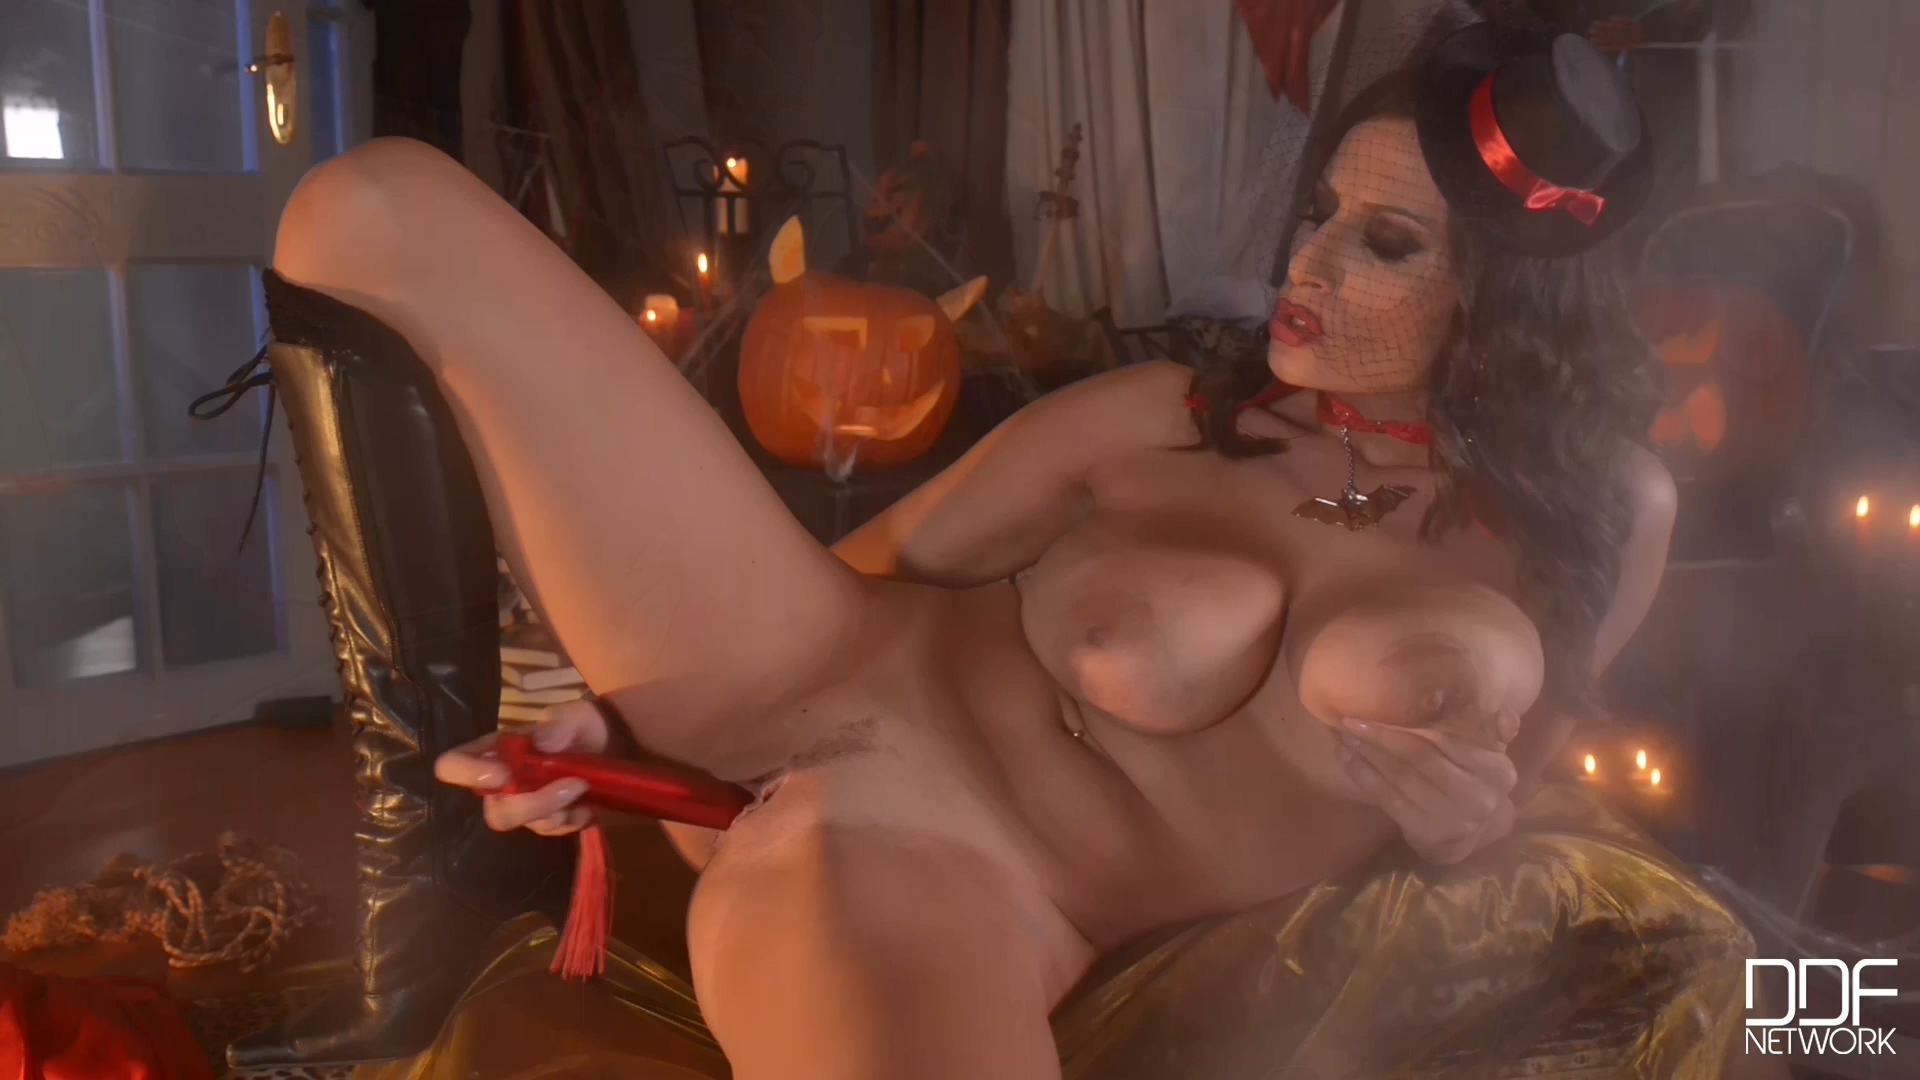 DDFBusty - 2014 Her Tricky Treat [solo] 1080p.mp4_20201217_221430.764.jpg